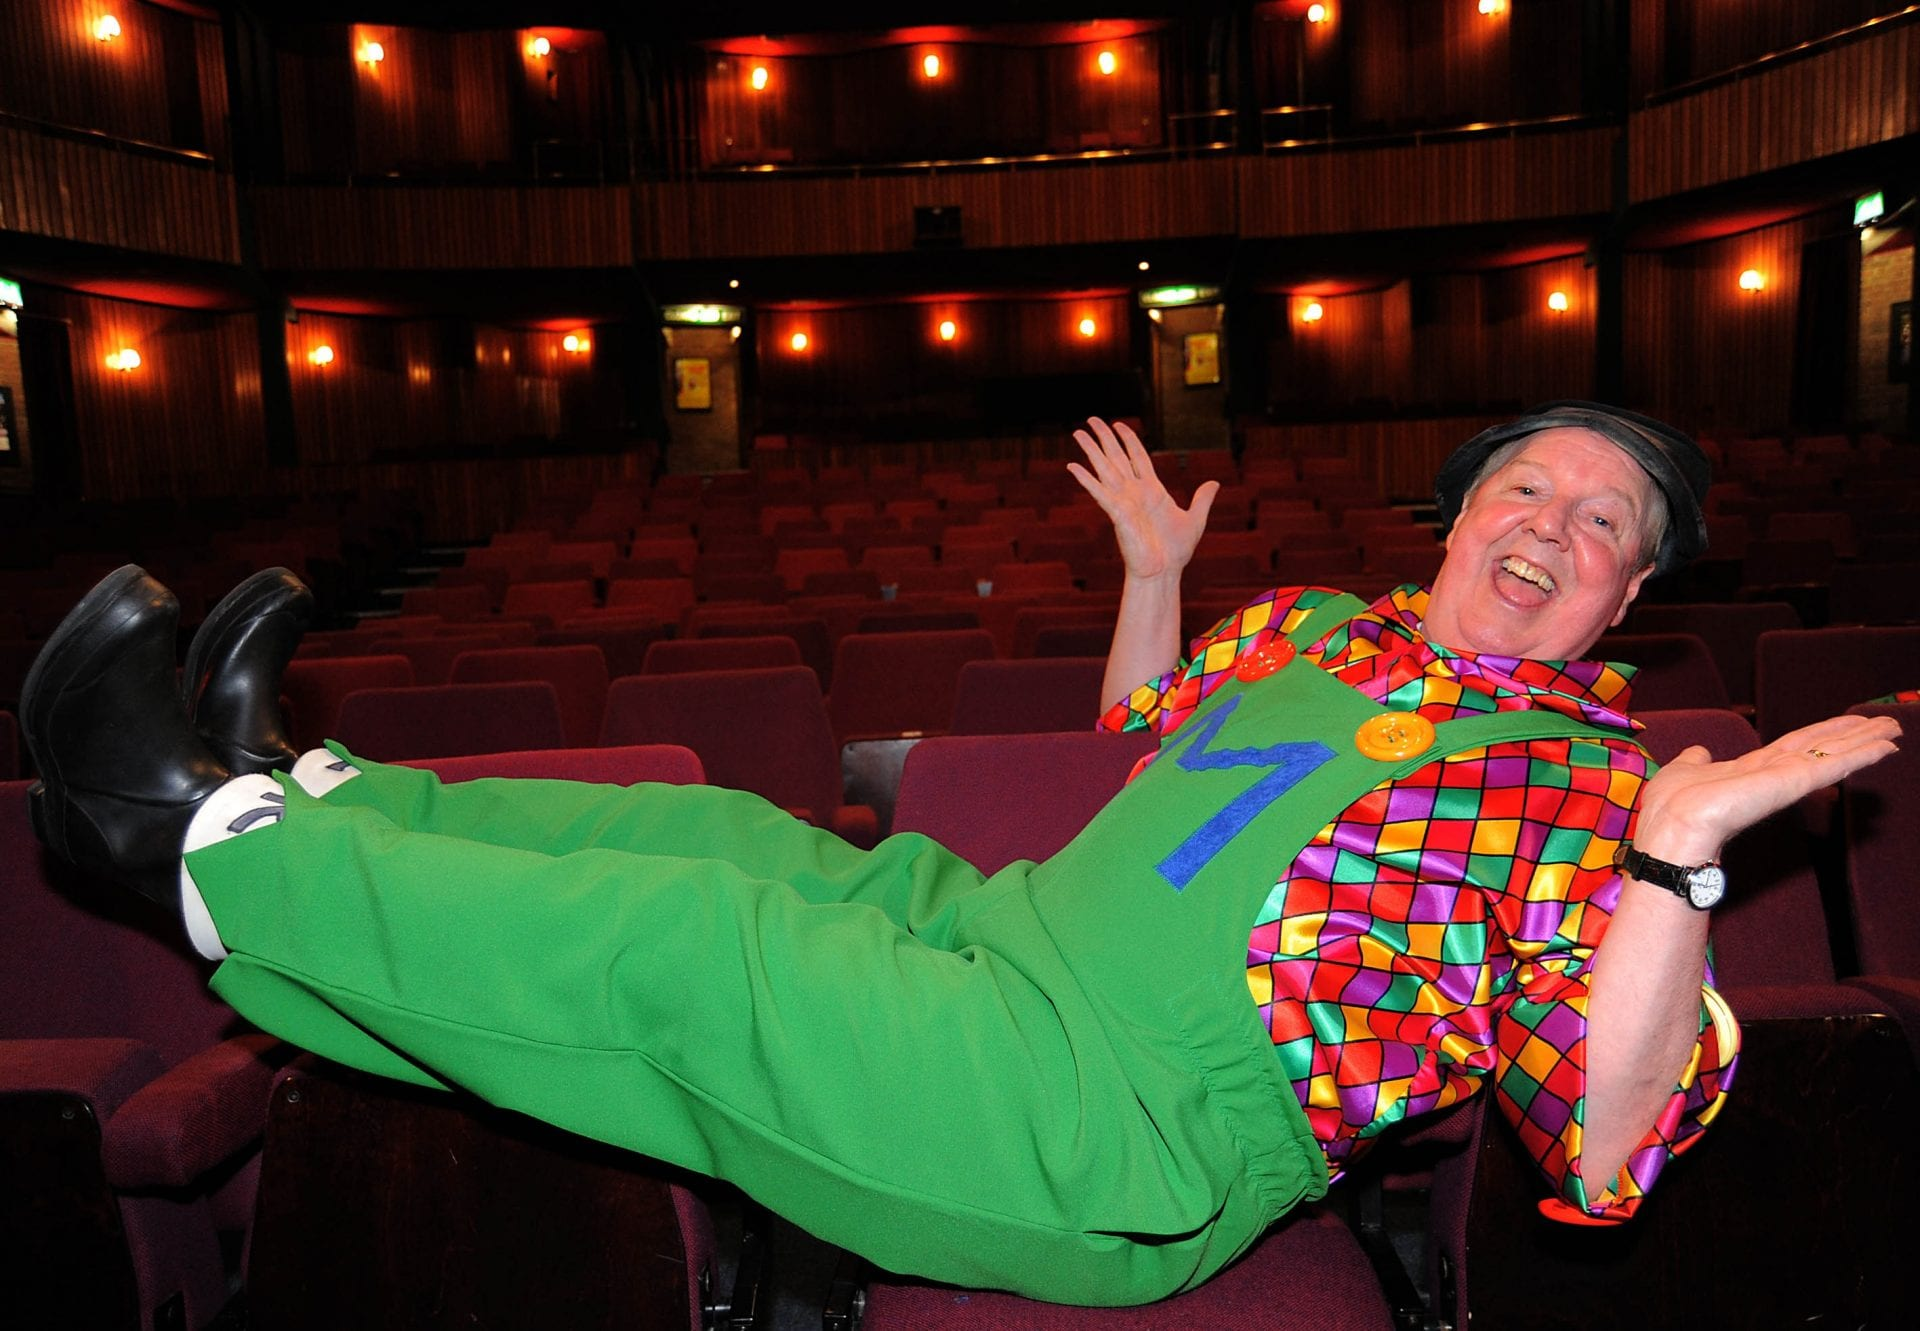 Jimmy Cricket will be headlining the Christmas panto at the Forum Theatre in Billingham